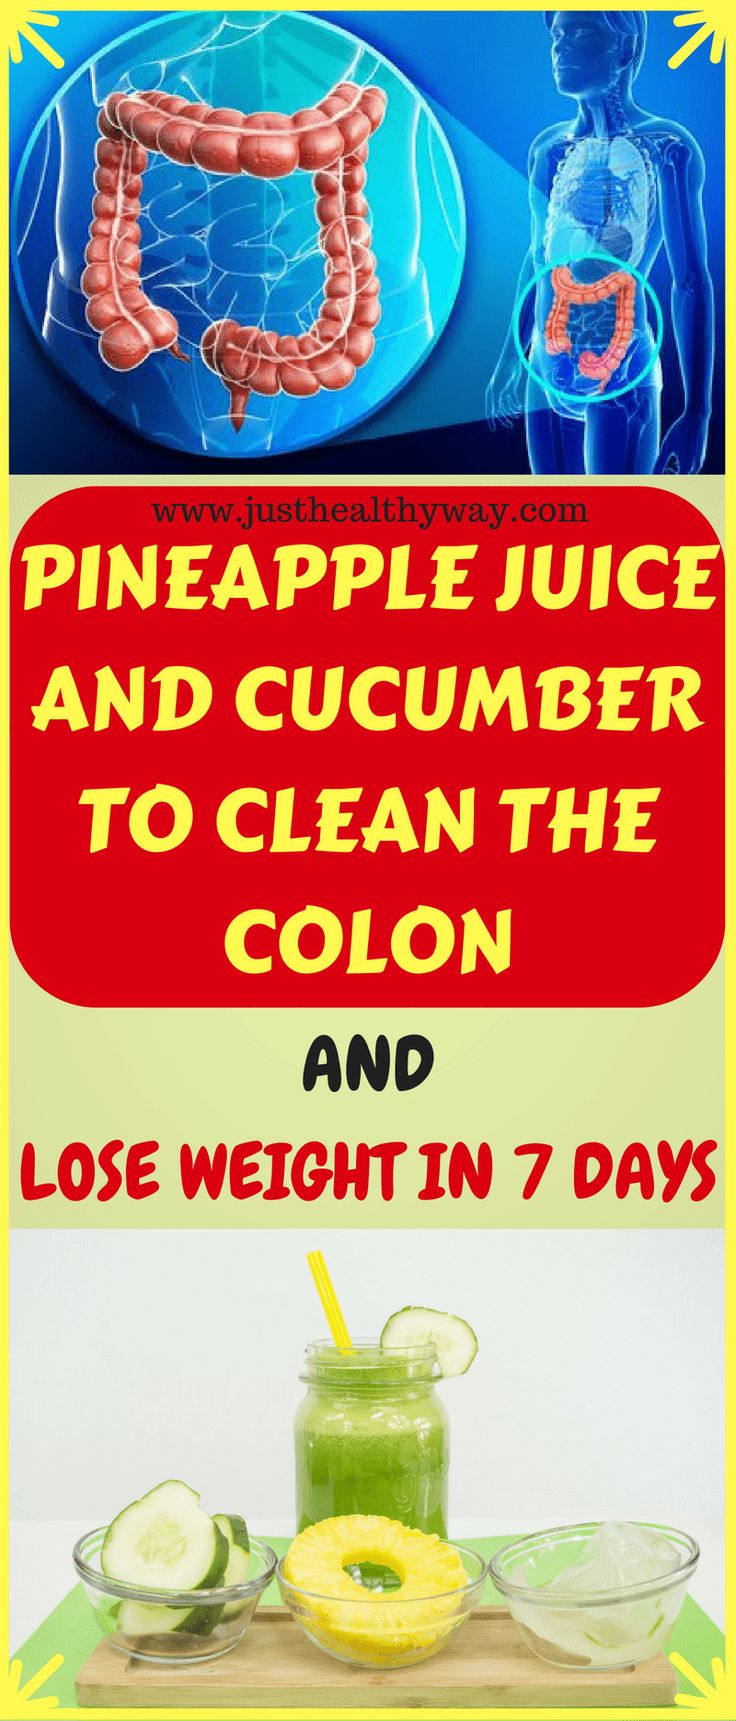 Pineapple Juice And Cucumber To Clean The Colon And Lose Weight In 7 Days – NICK Barling